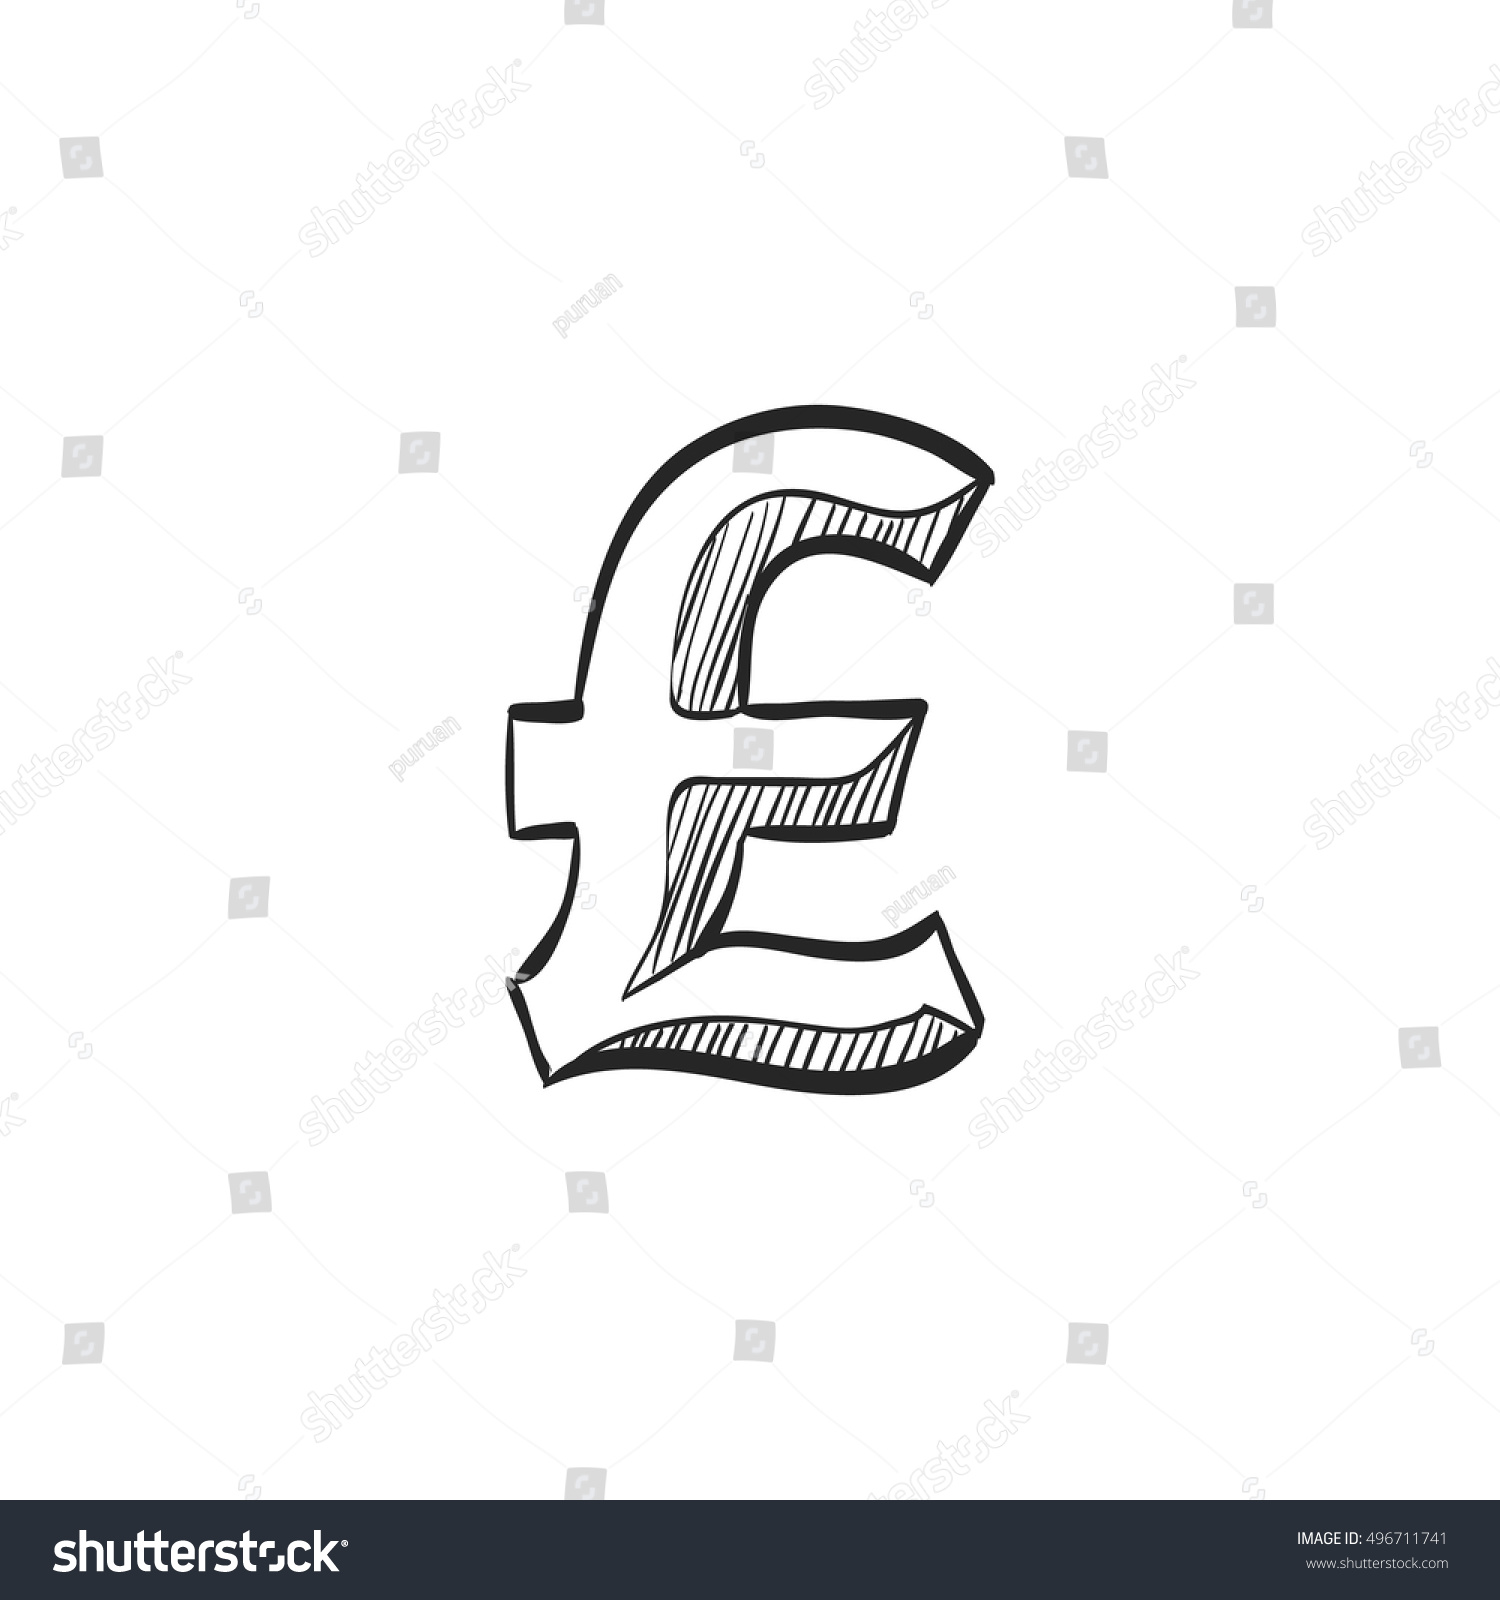 Pound Sterling Symbol Icon Doodle Sketch Stock Vector Royalty Free